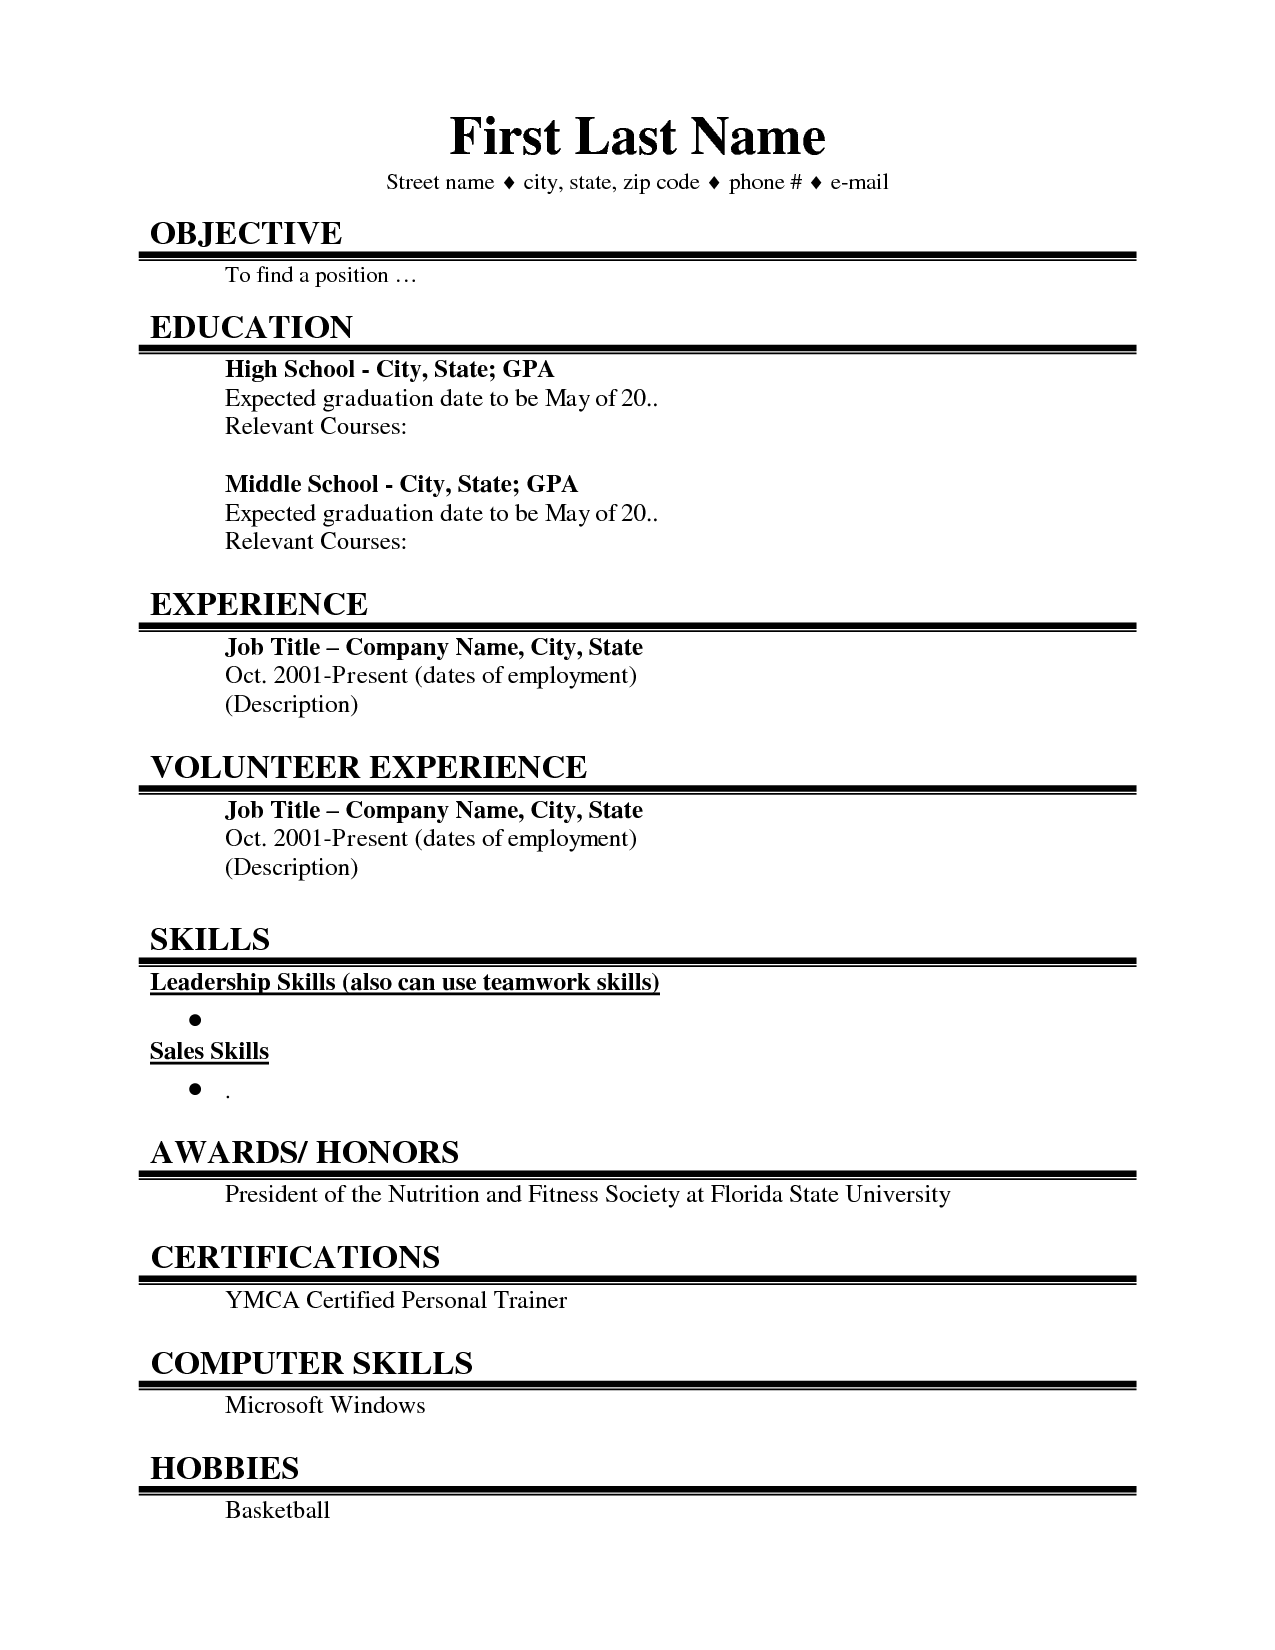 Resume Sample For College Student First Job Resume Google Search Resume Pinterest